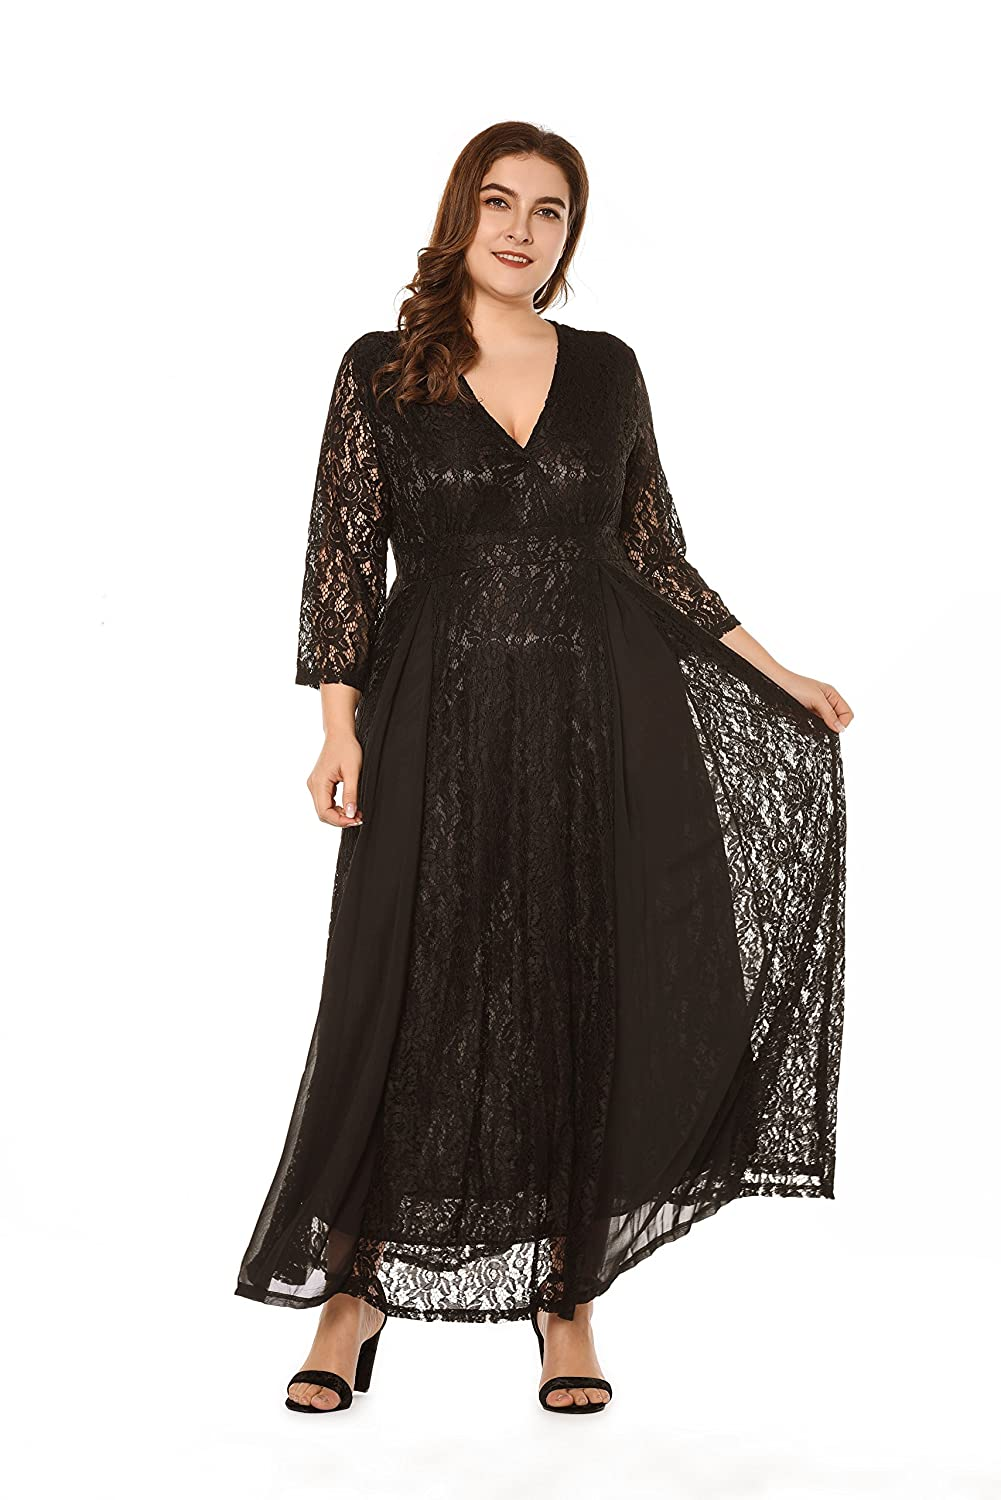 1940s Plus Size Dresses | Swing Dress, Tea Dress YISIBIA Womens Plus Size Vintage Floral Lace Dress High Waist Party Wedding Flowy Maxi Dresses $30.99 AT vintagedancer.com